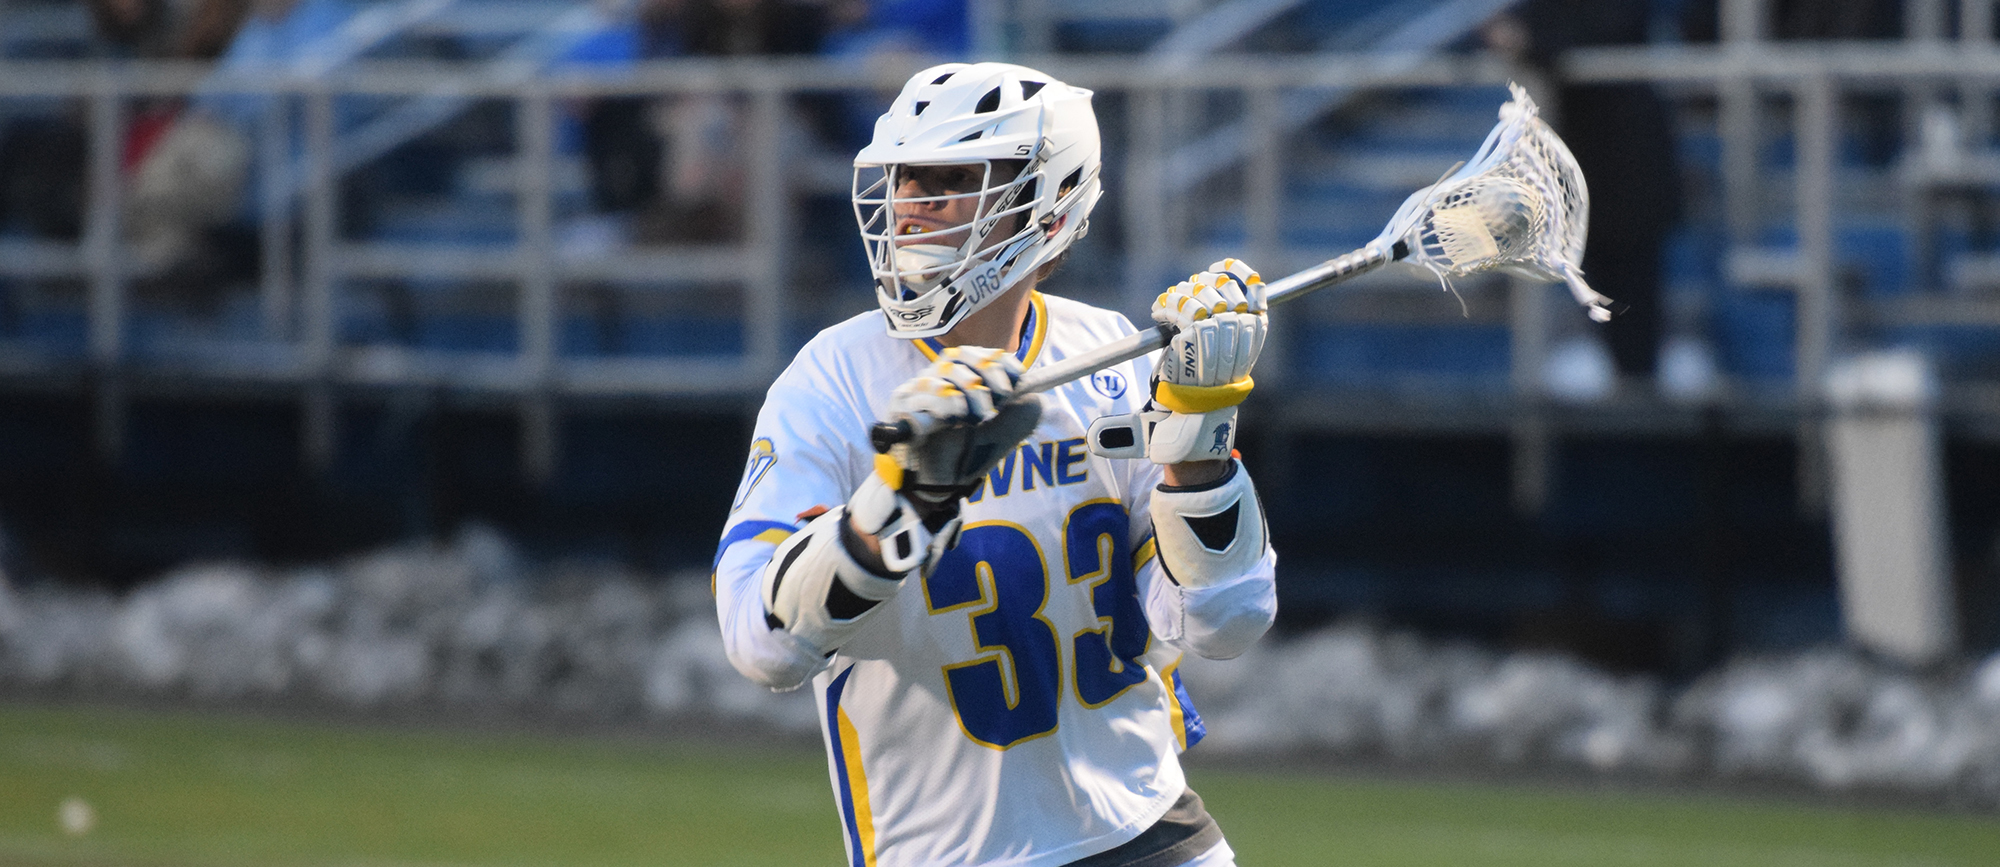 Junior Tim Breau dished out a career-best four assists in Western New England's 15-8 win over Curry on Tuesday night. (Photo by Rachael Margossian)